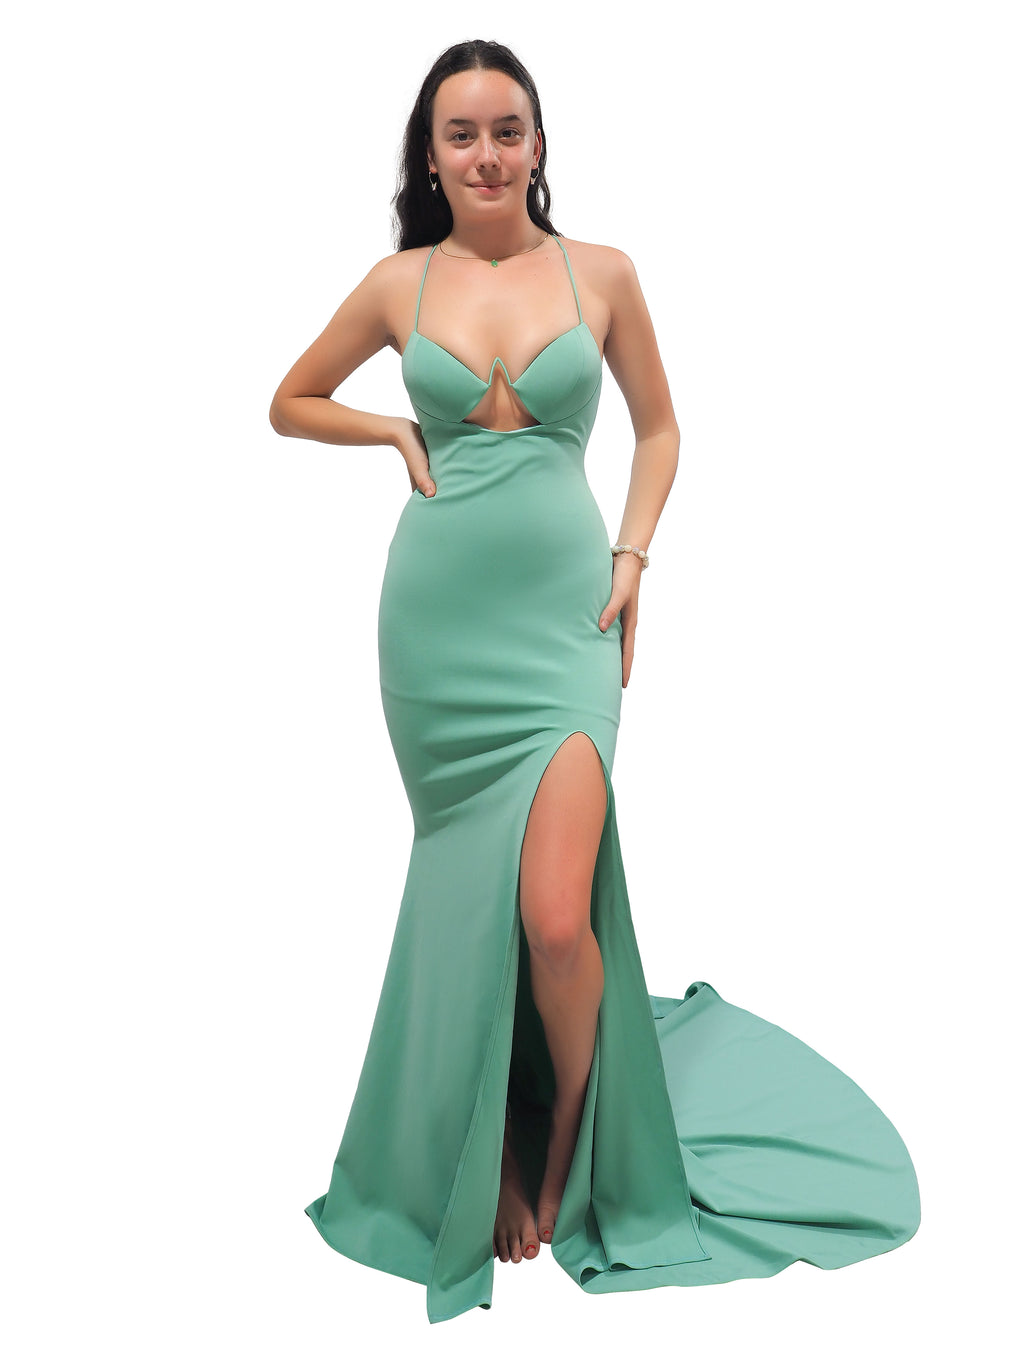 Jade pastel minty green mermaid dress with bustier cups